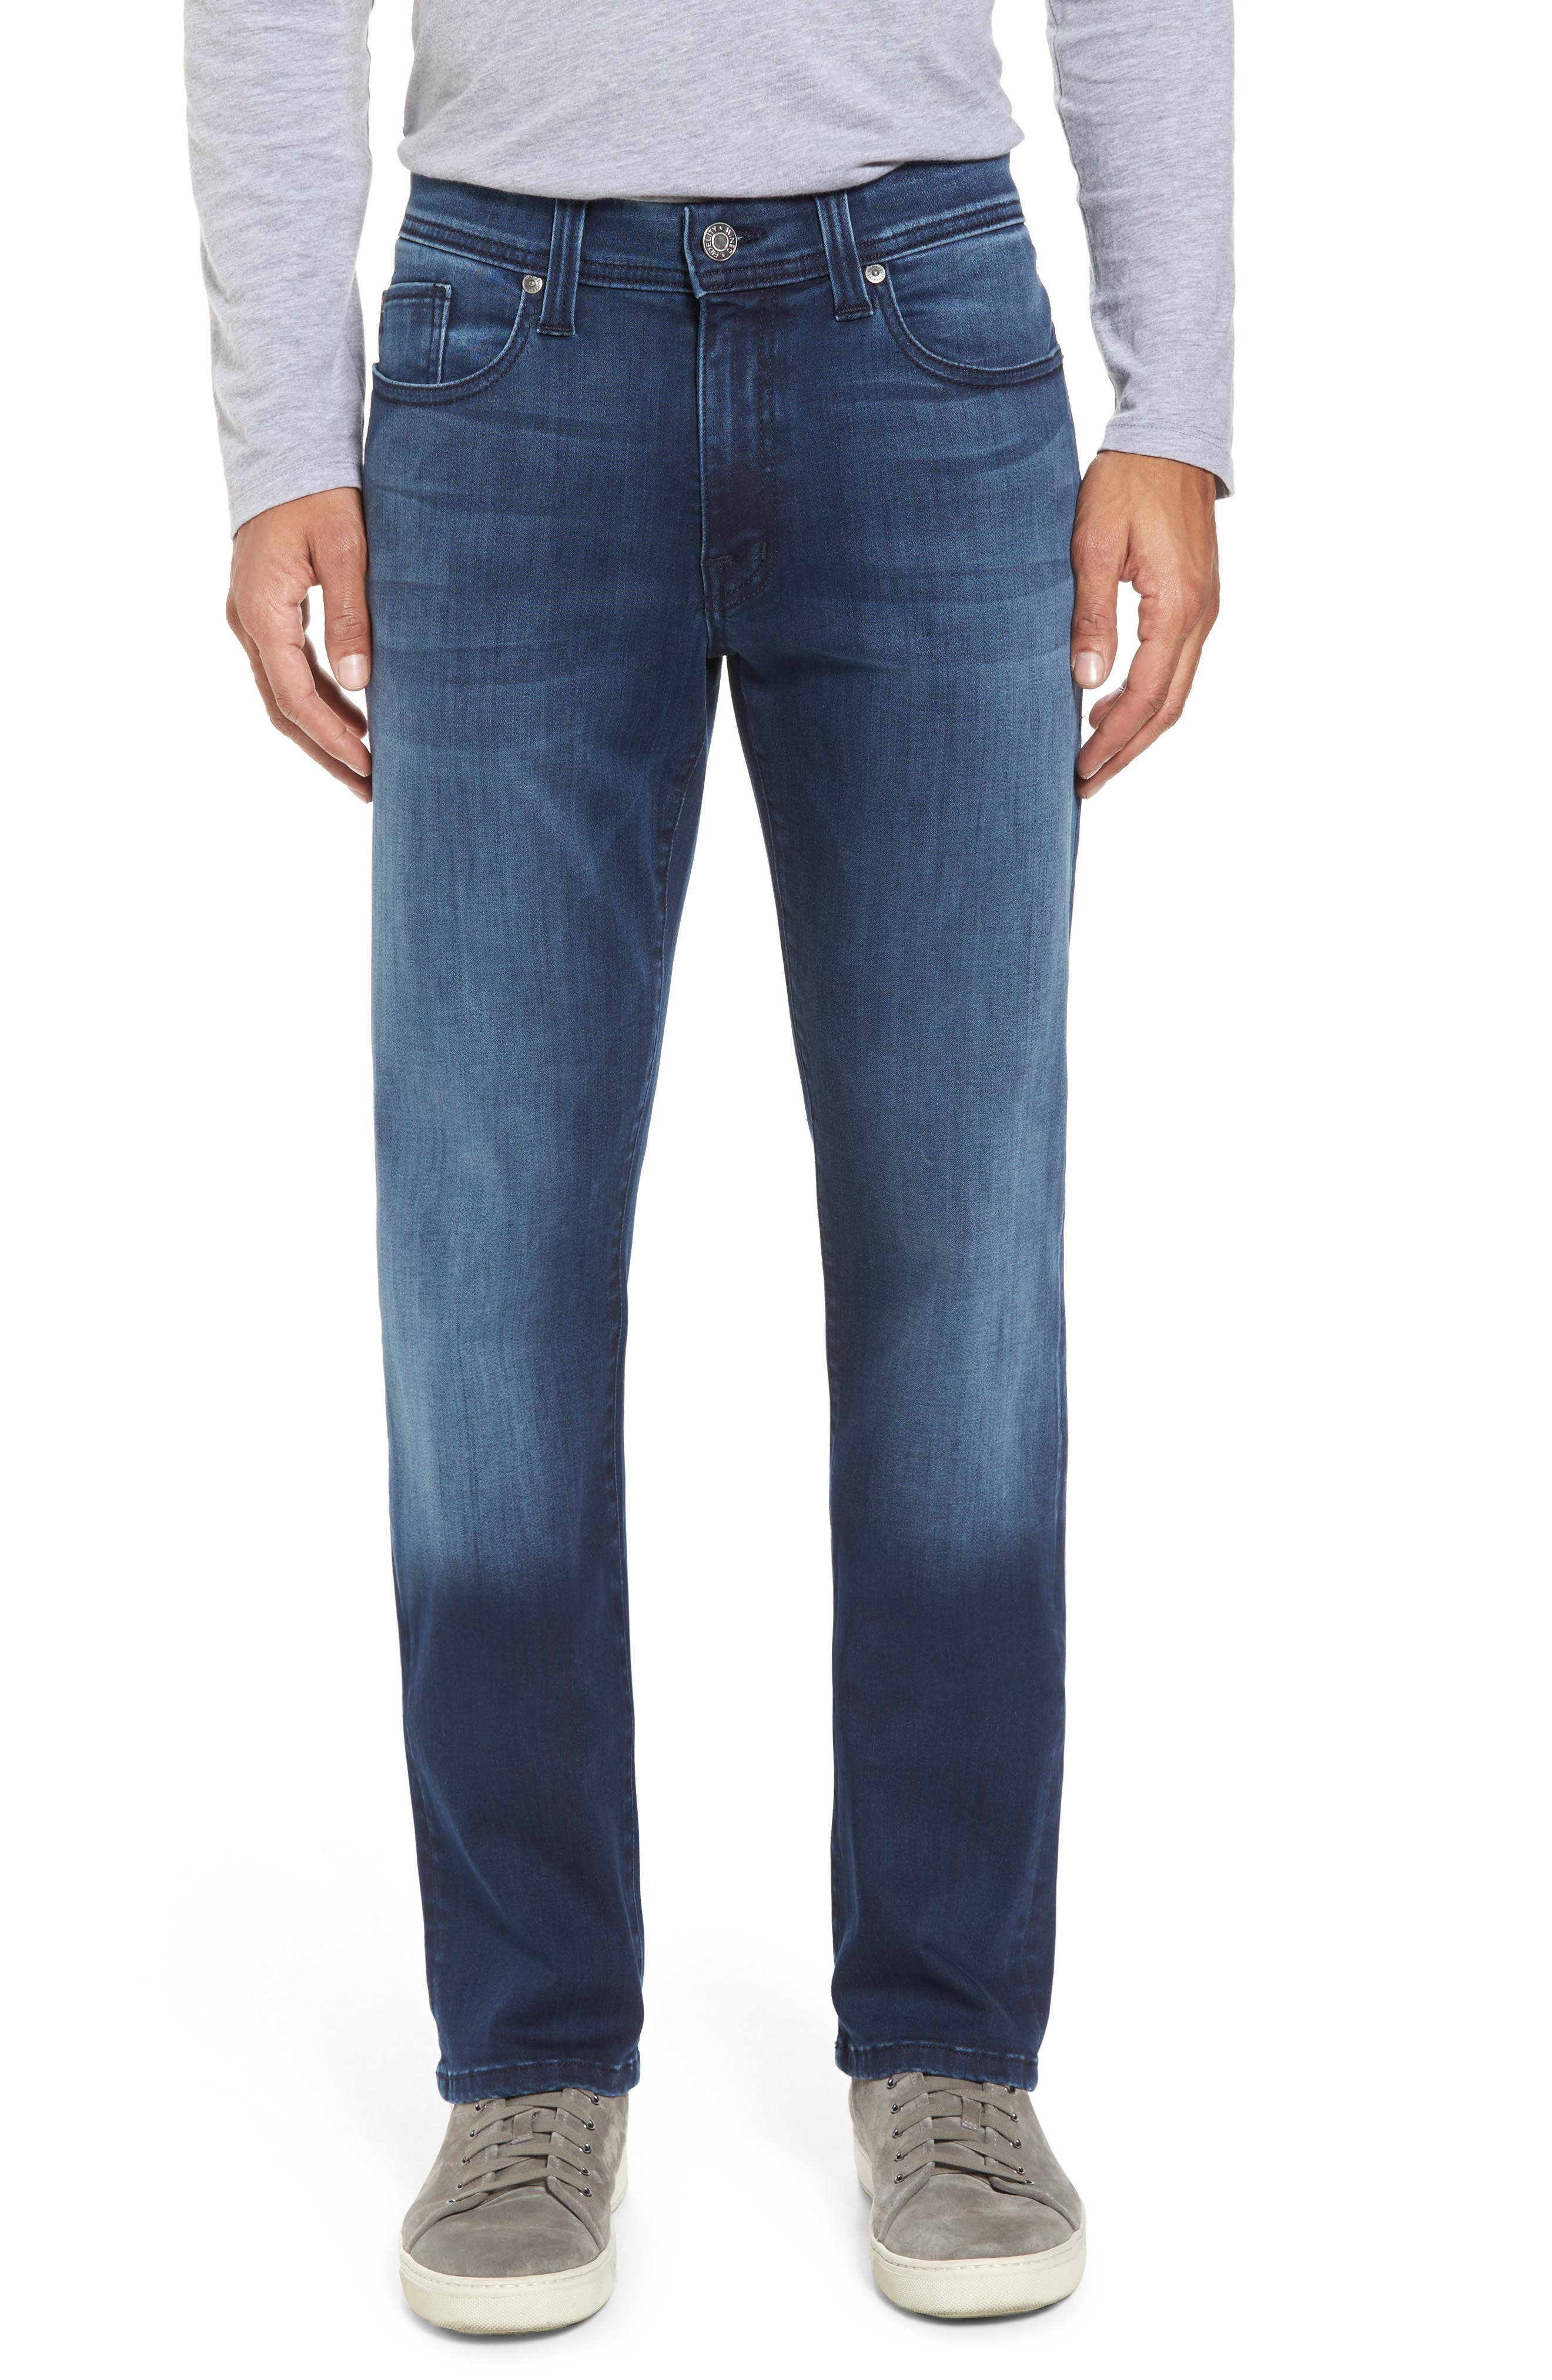 Jimmy Slim Straight Leg Jeans,                         Main,                         color, Galaxy Blue